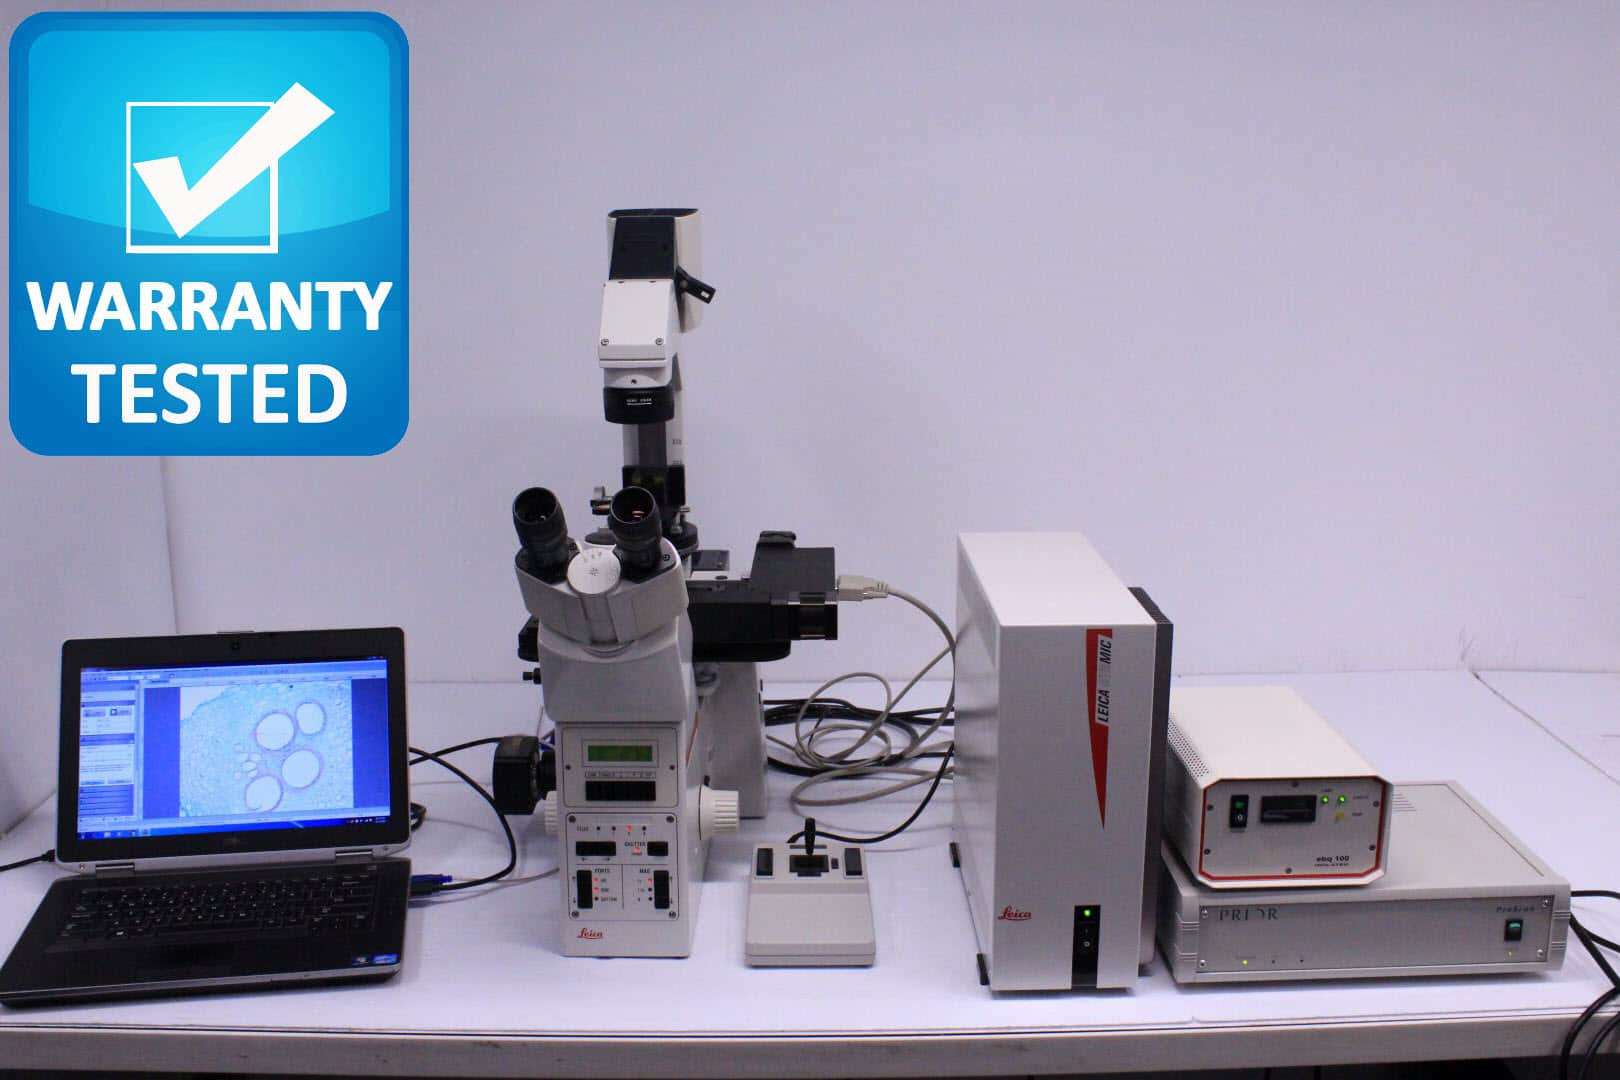 Leica DM IRE 2 Inverted Motorized Microscope DMIRE2